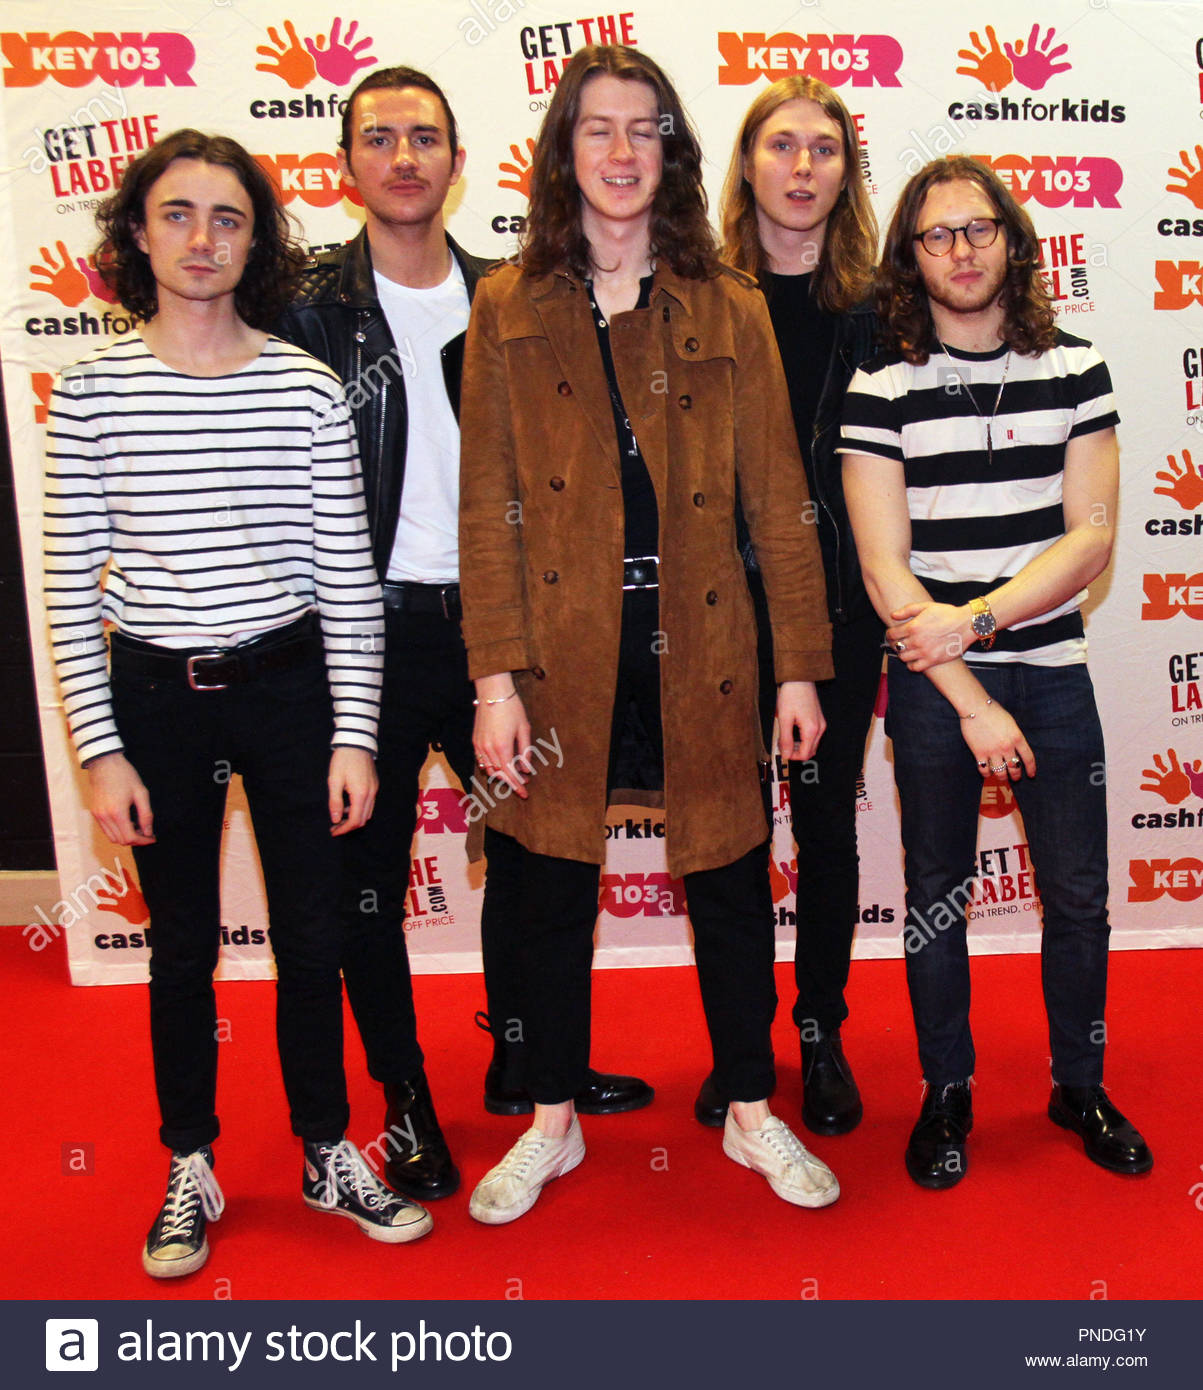 Blossoms backstage at Key 103 Live at the Manchester Arena on Friday 09 December 2016 - Stock Image